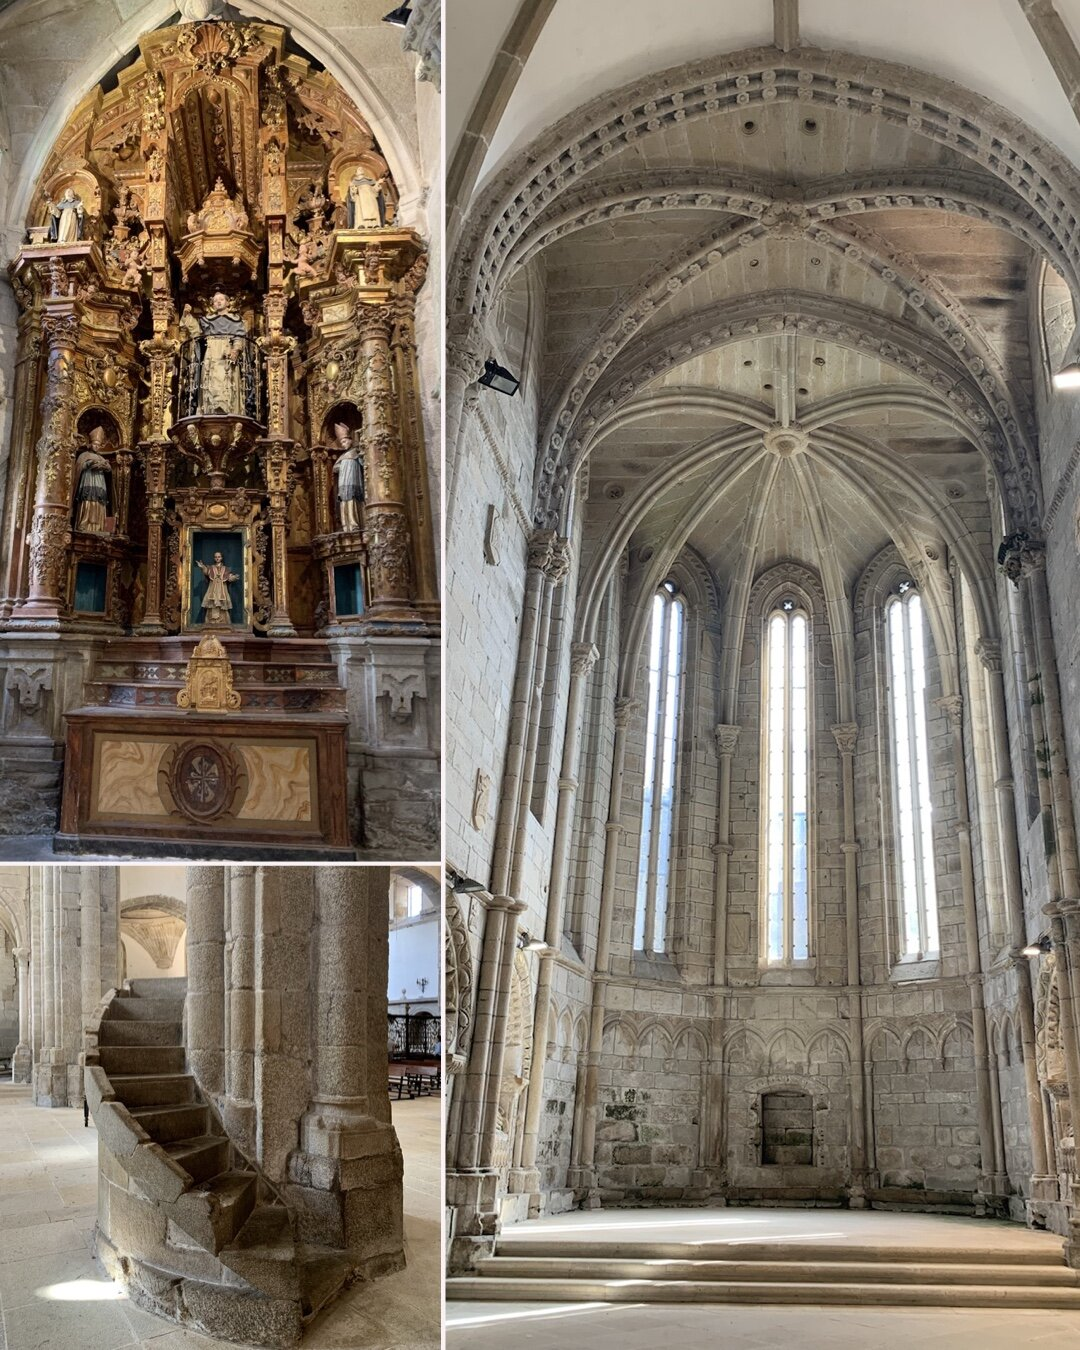 A untouched Romanesque church with one or two later extravagances.